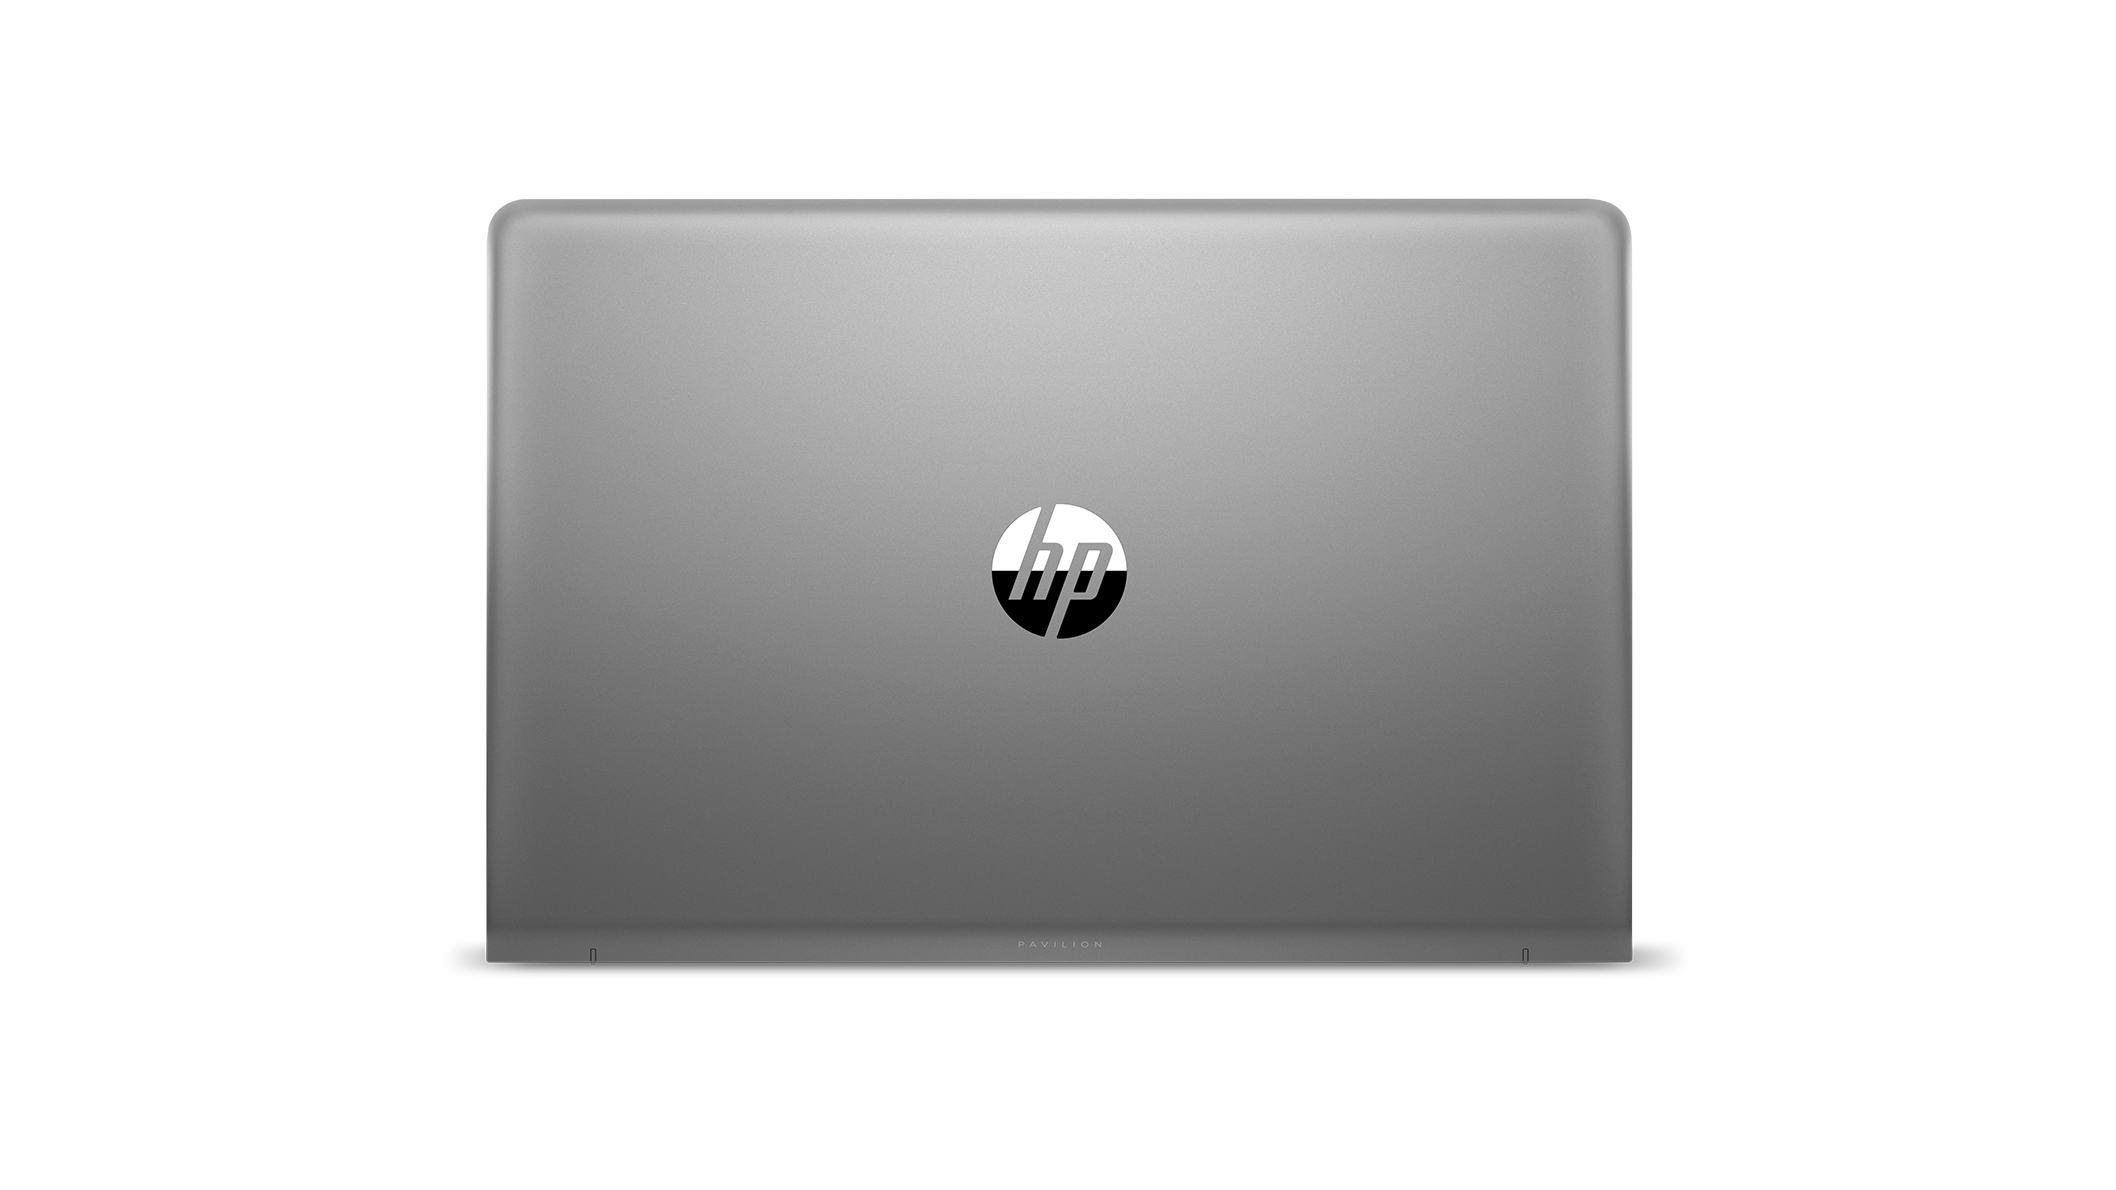 Rear view of the HP Pavilion 15